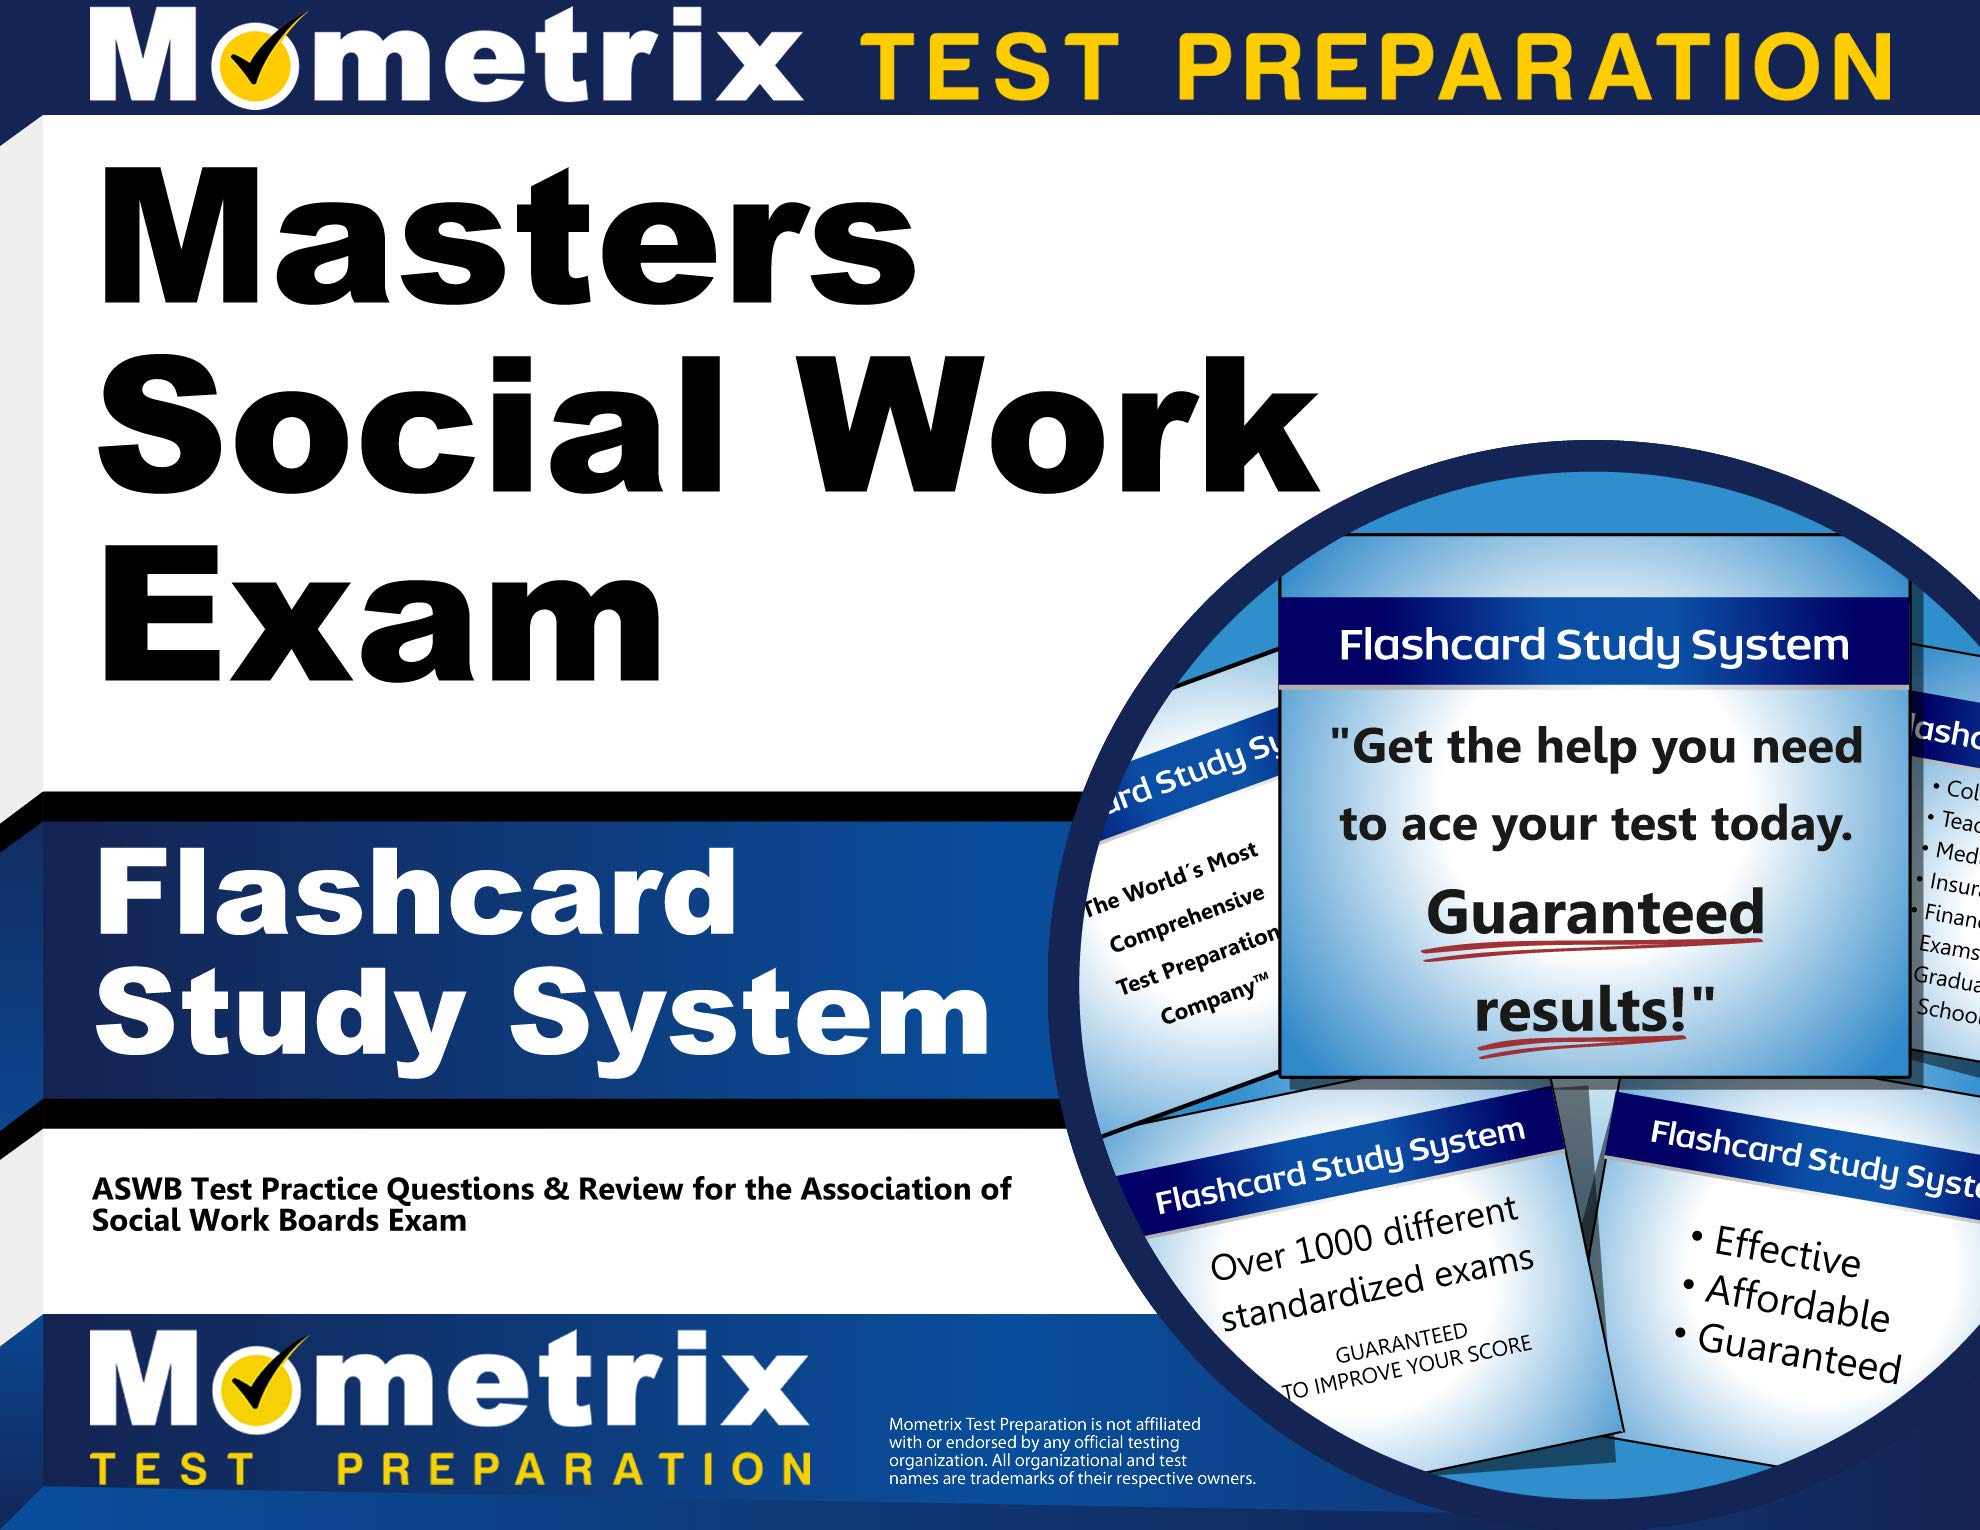 Masters Social Work Exam Flashcard Study System: ASWB Test Practice Questions & Review for the Association of Social Work Boards Exam (Cards) by Mometrix Media LLC